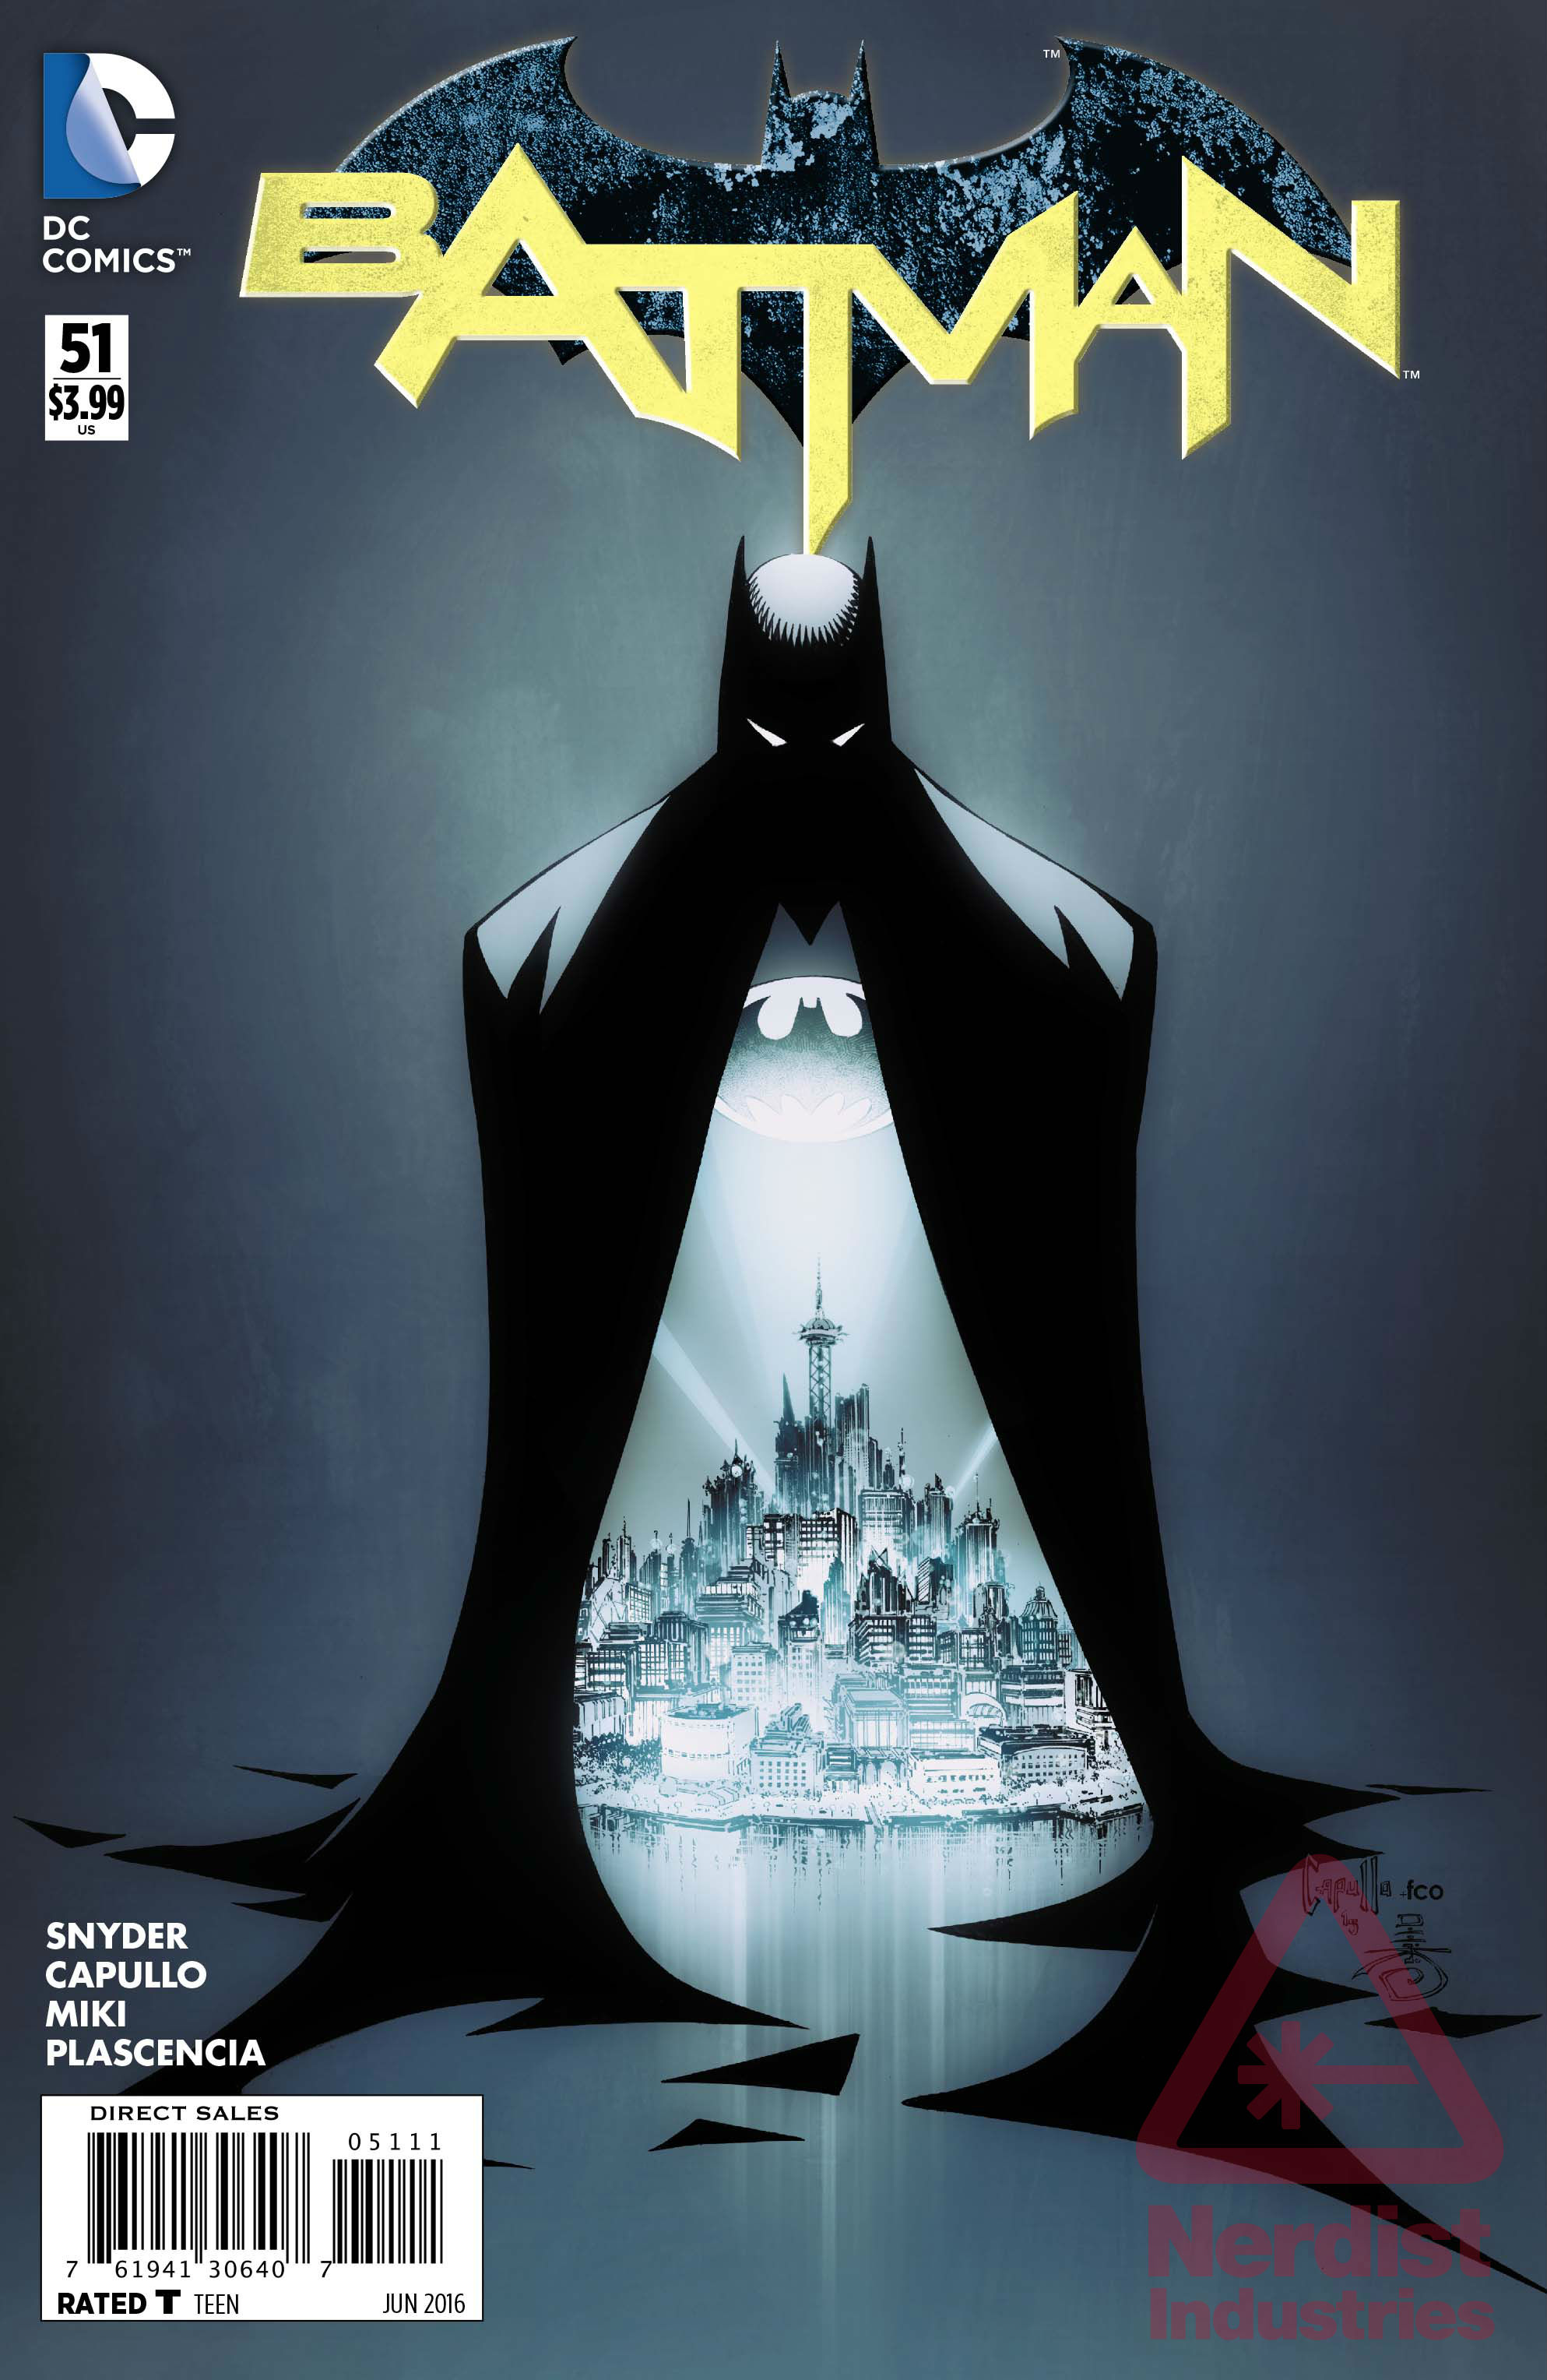 Preview Batman #51